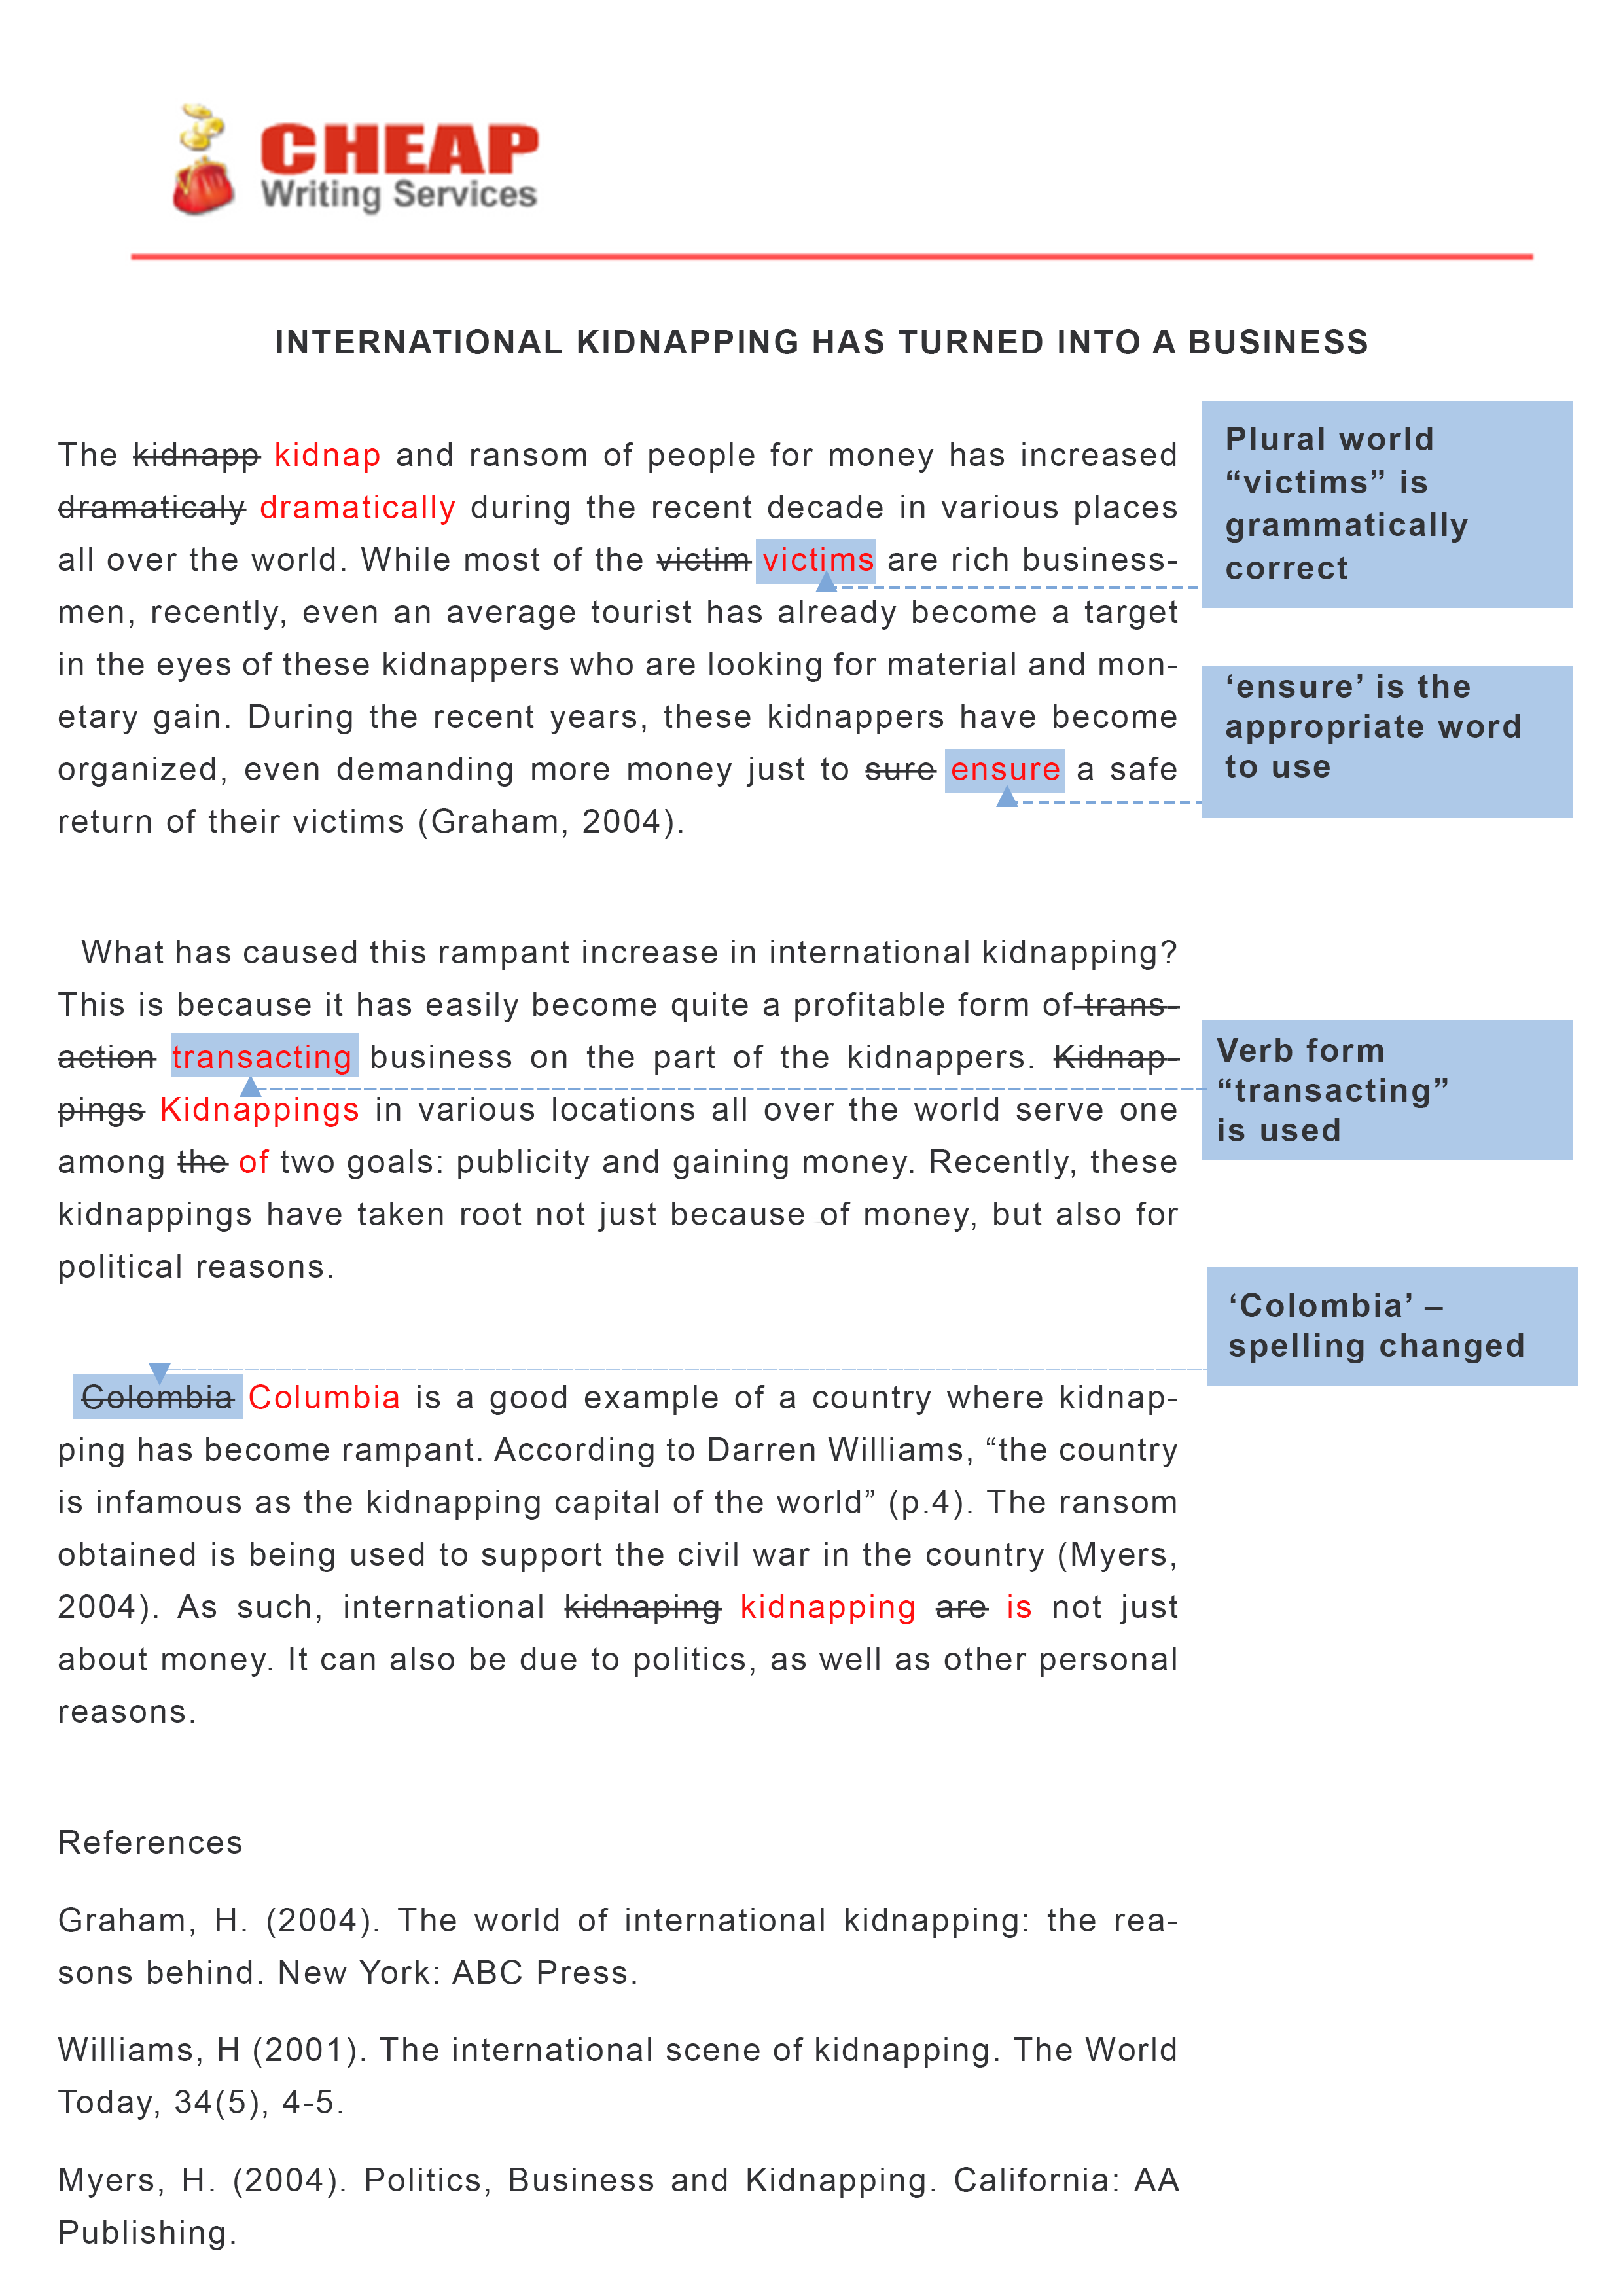 001 Essay Example Proofreader Free Incredible Online Full